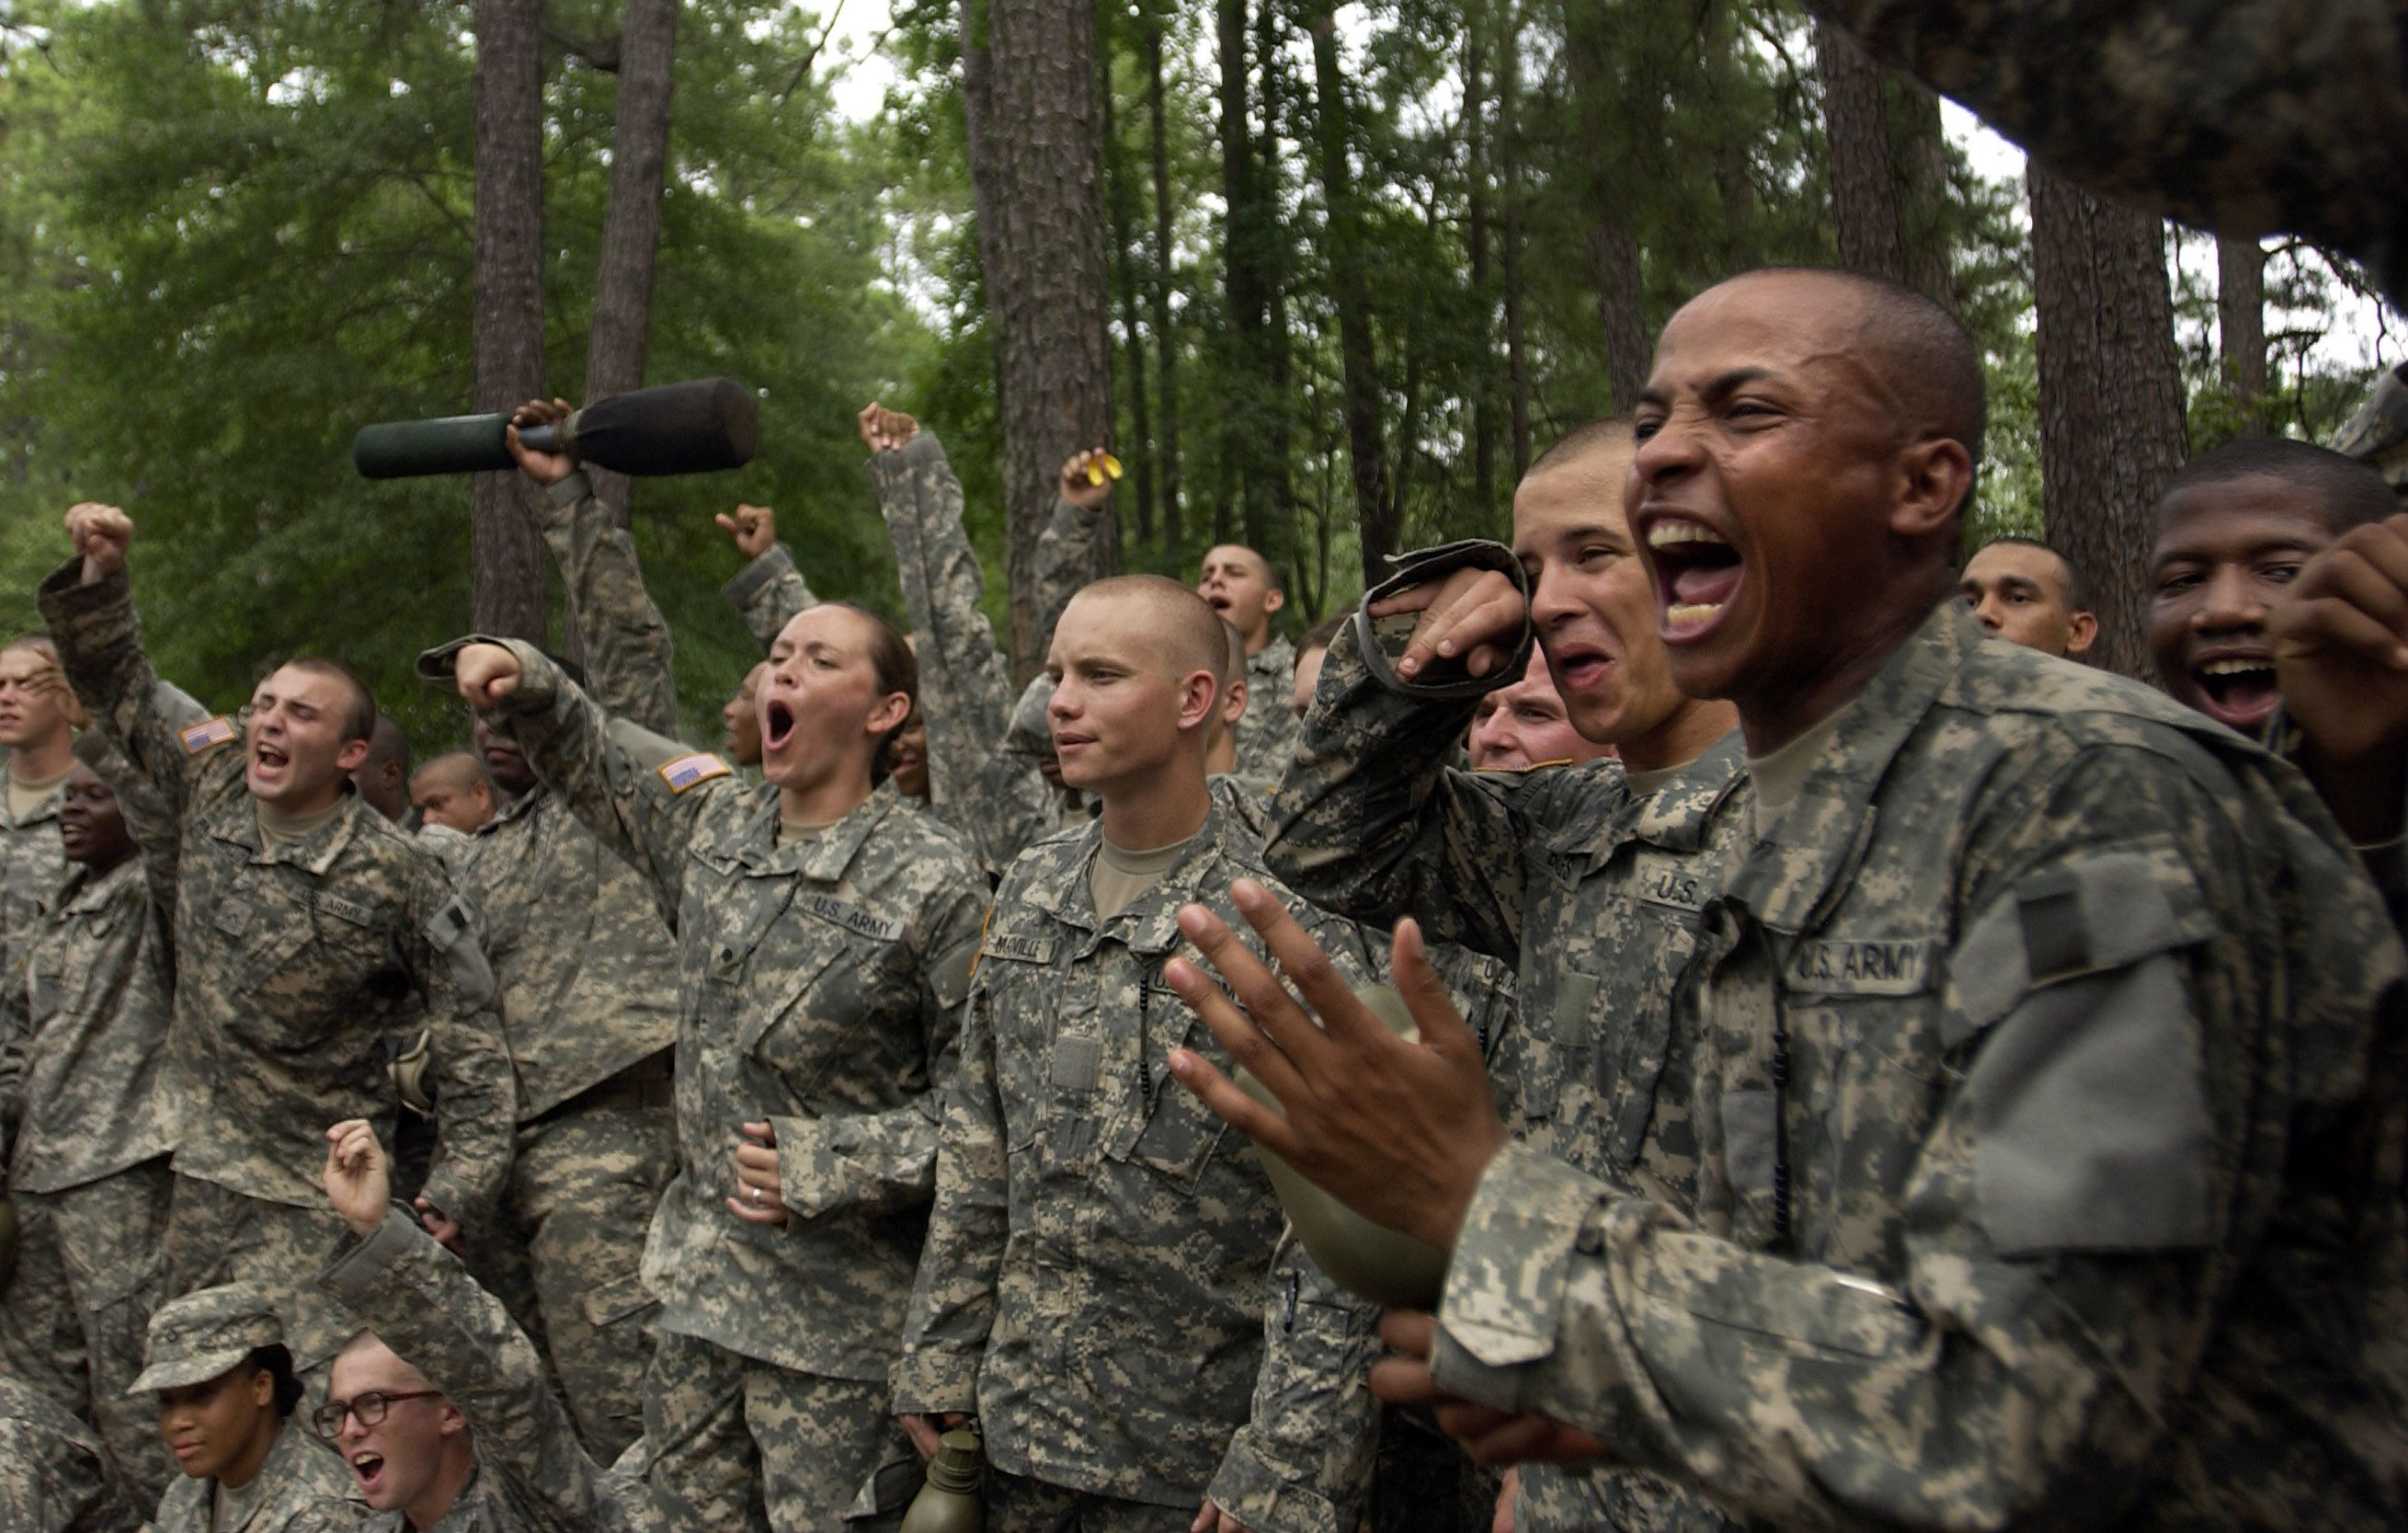 Preparing for the Army General Orders and at Boot Camp